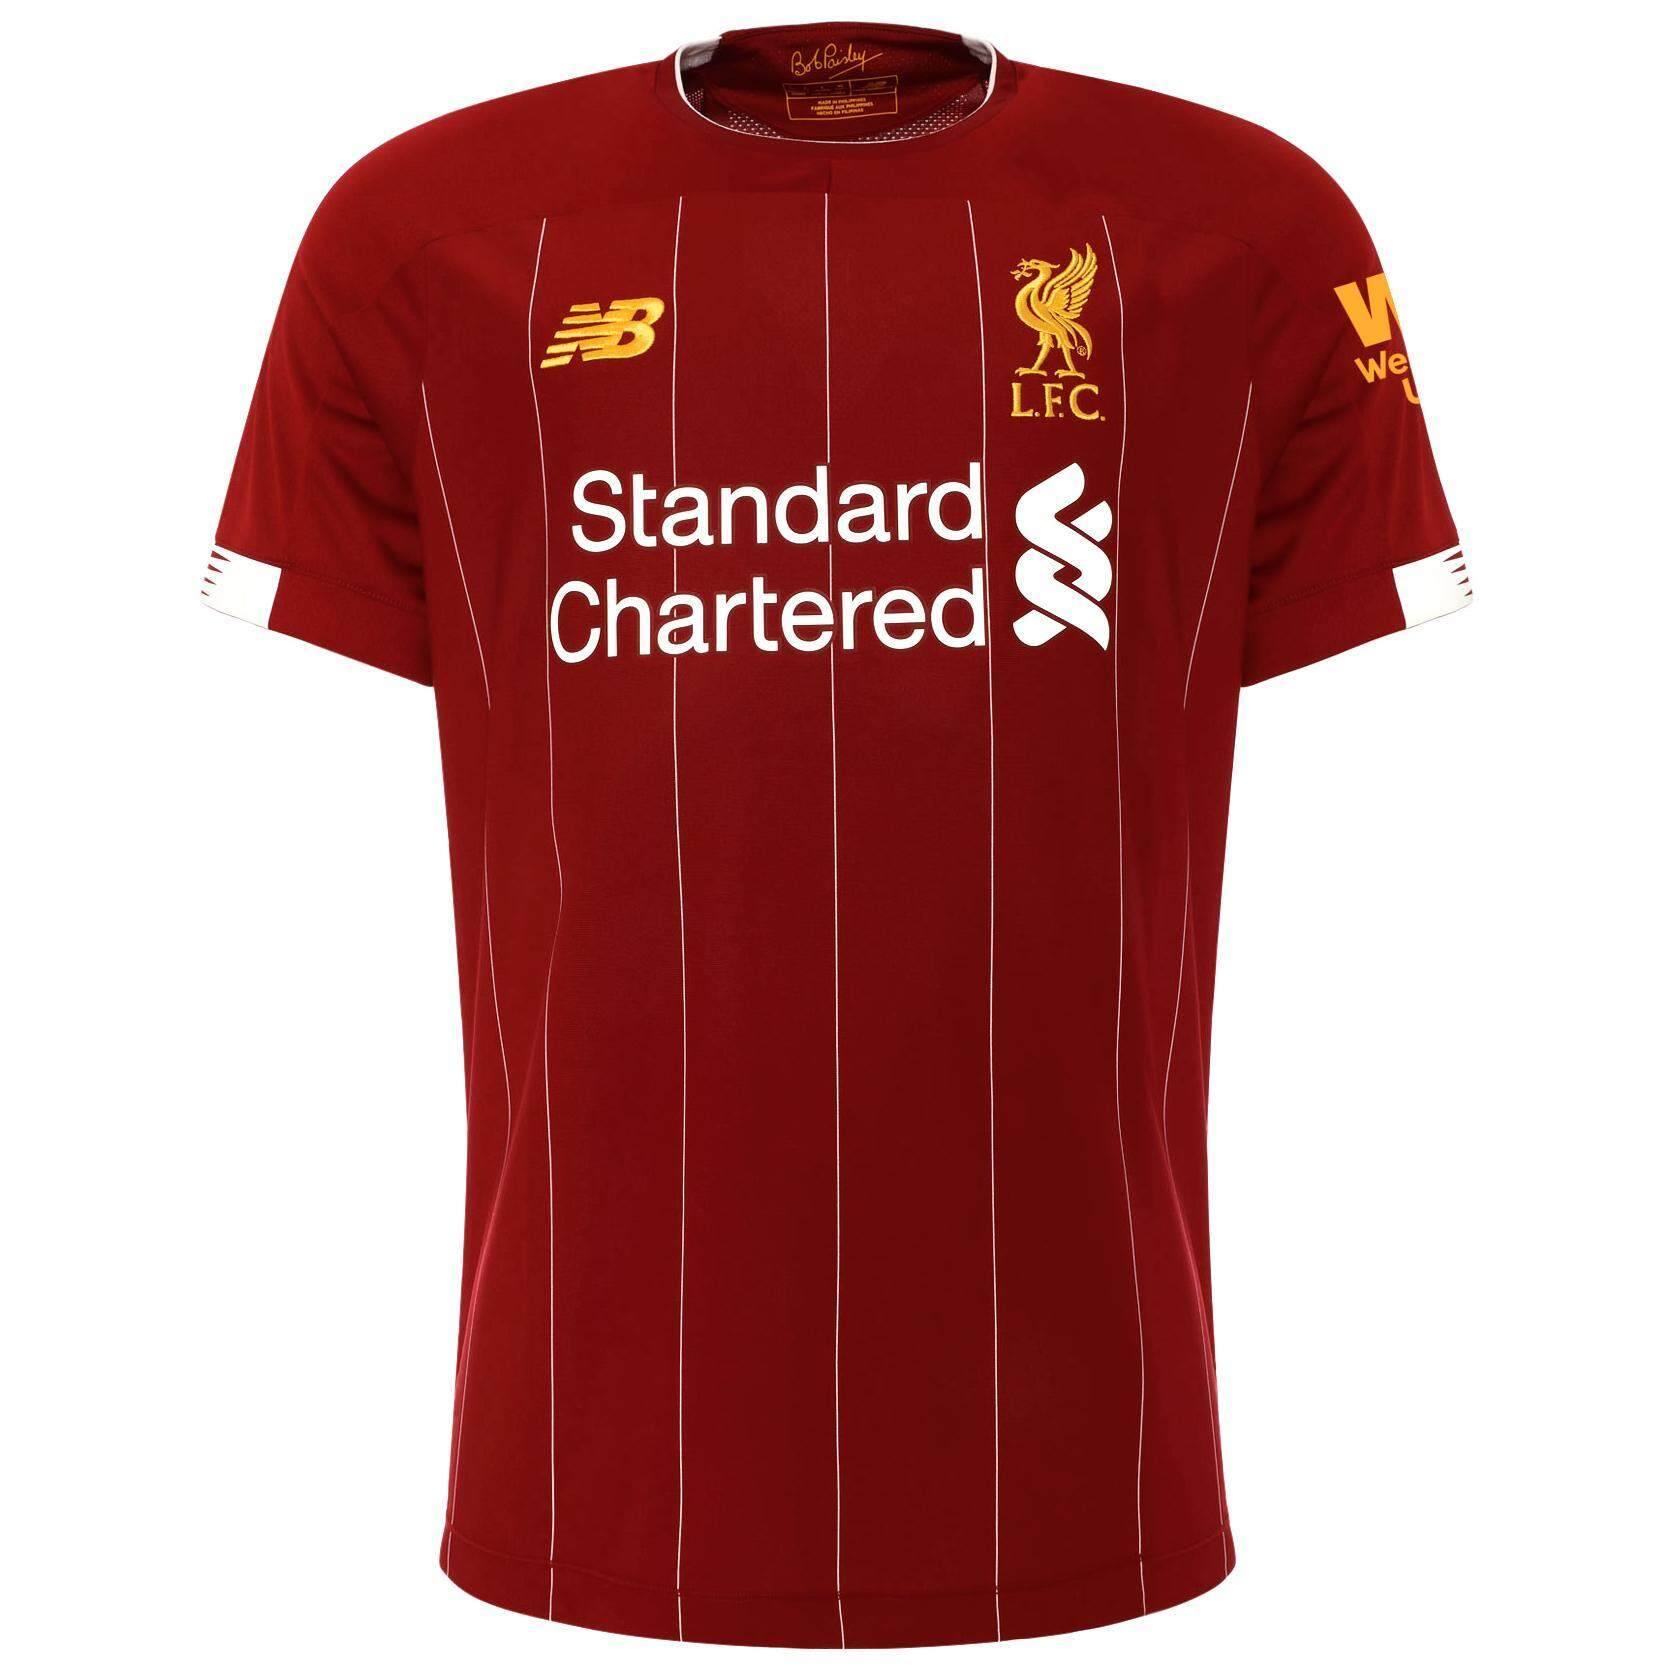 e279ac4e6a2 9538 items found in Football. Liverpool Home Jersey 2019 20 for Men EPL